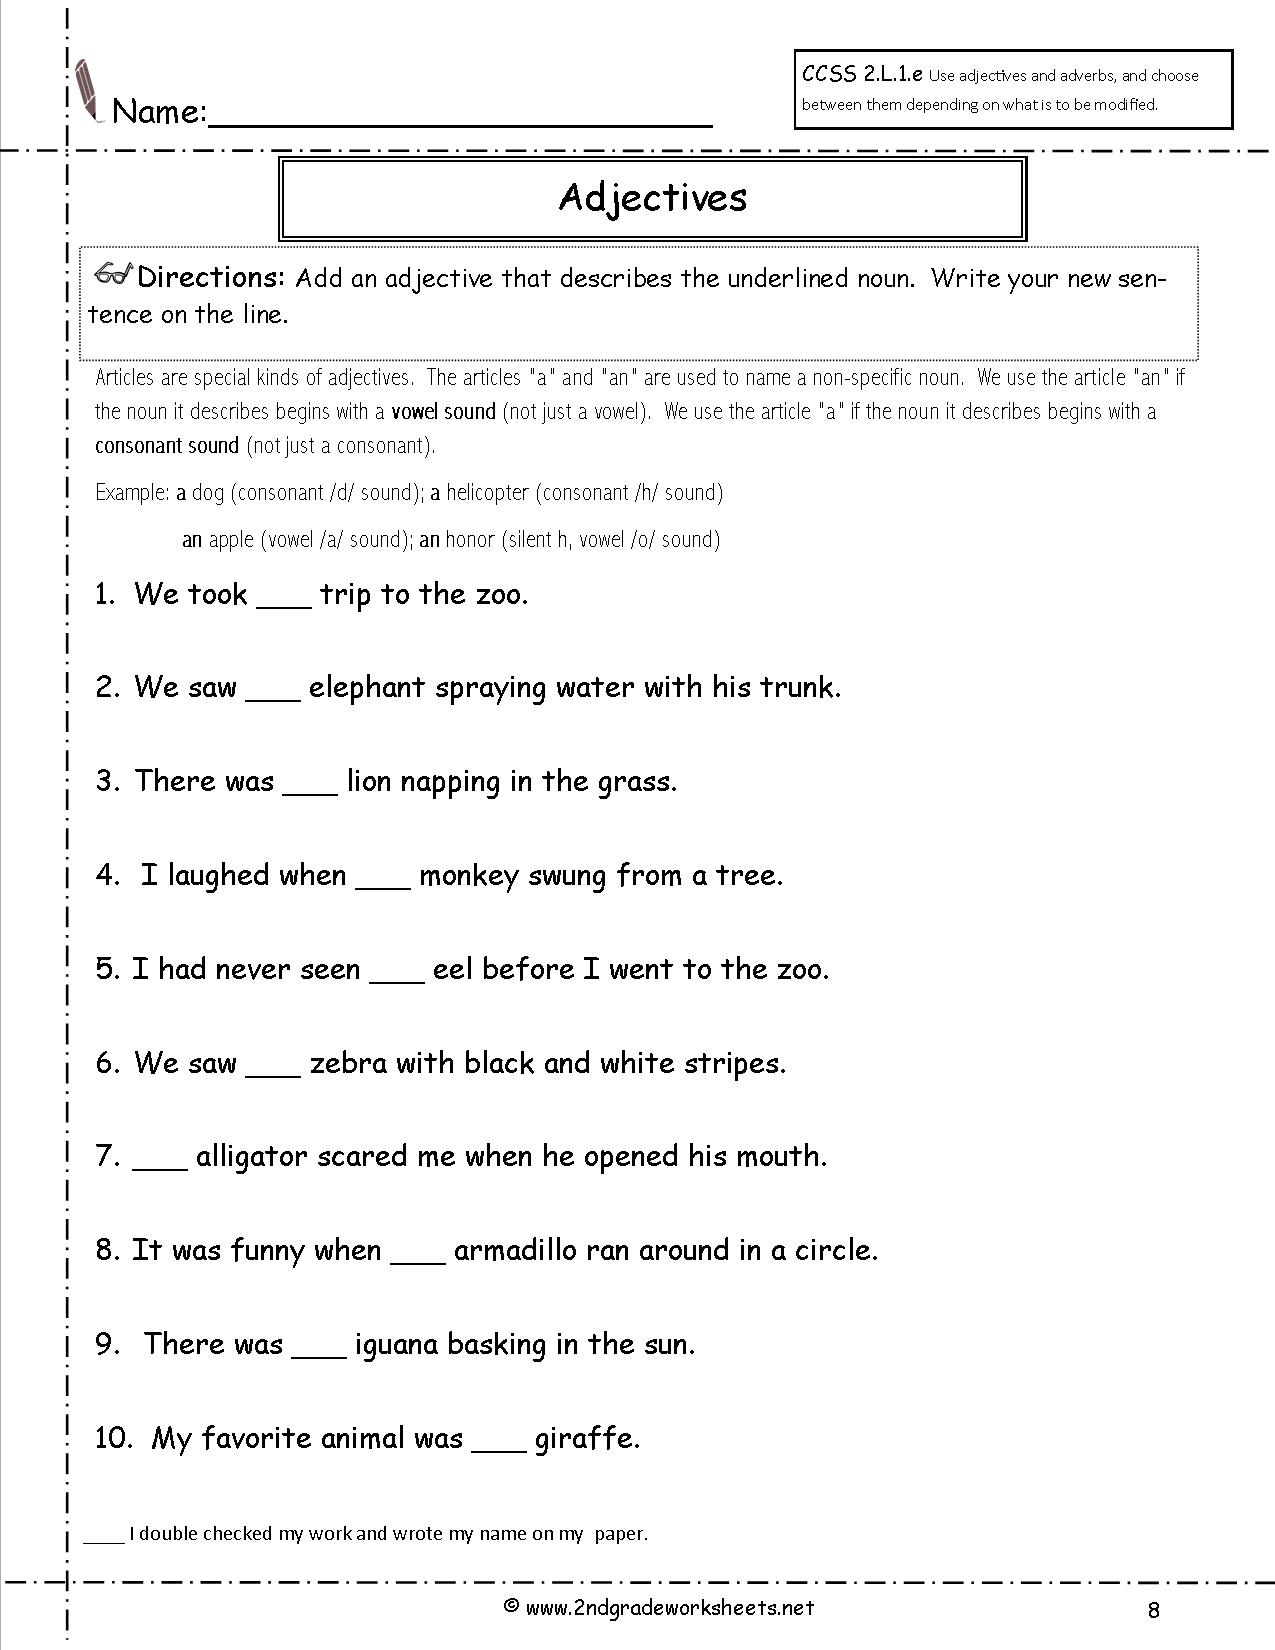 Free Printable Worksheets For Highschool Students